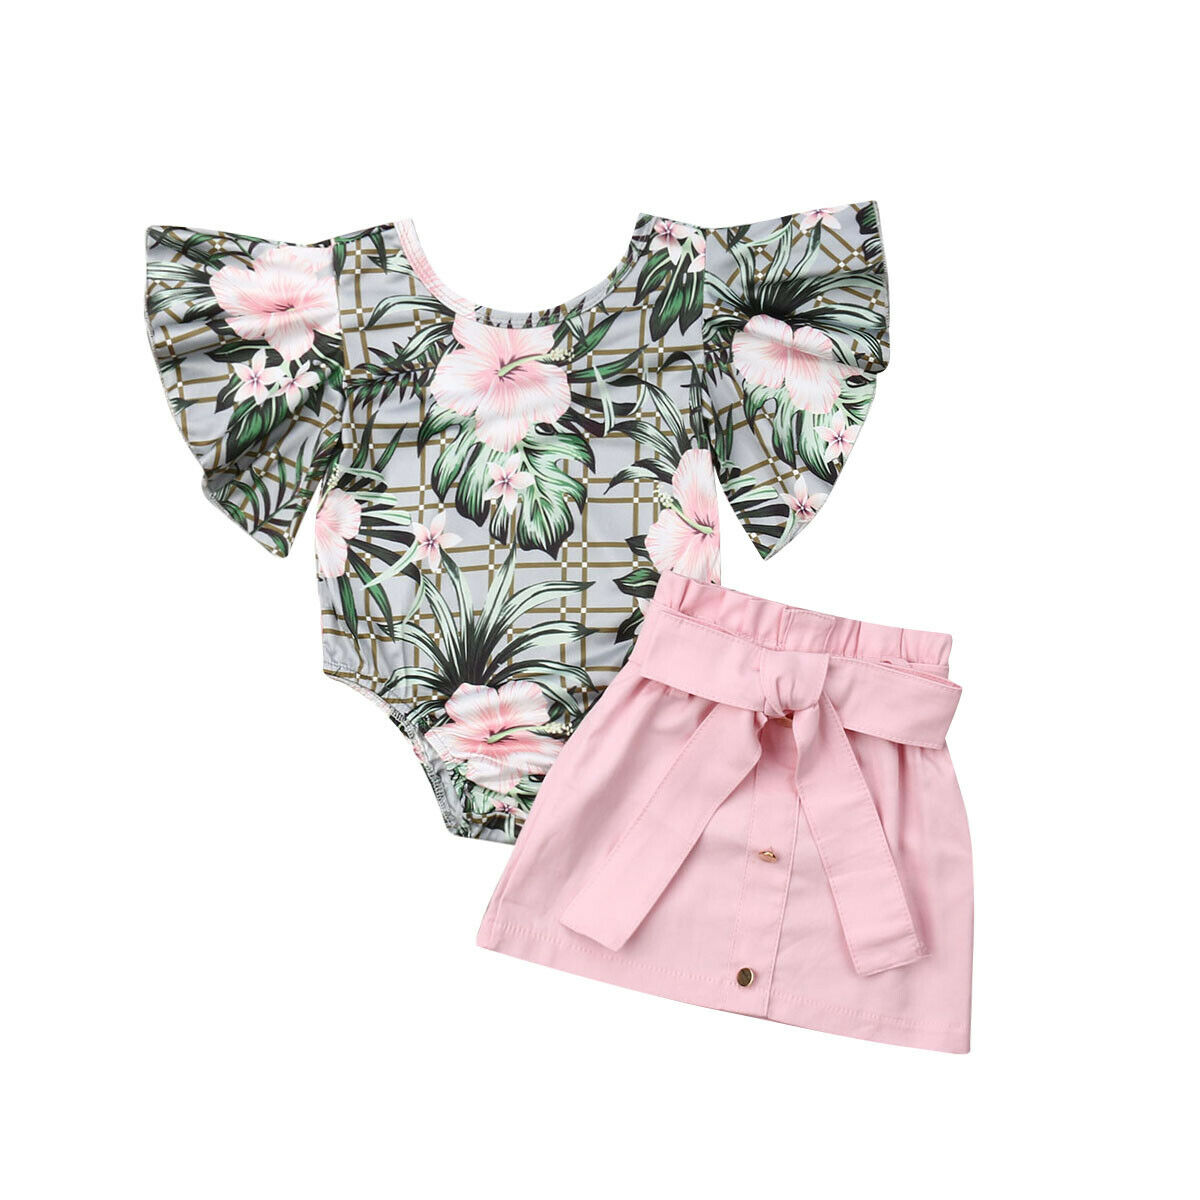 59013283d5aa3 Emmababy Summer Baby Girl Clothes Ruffle Floral Girl Romper Tops+Skirt 2PCS  Set Clothes ~ Hot Deal July 2019